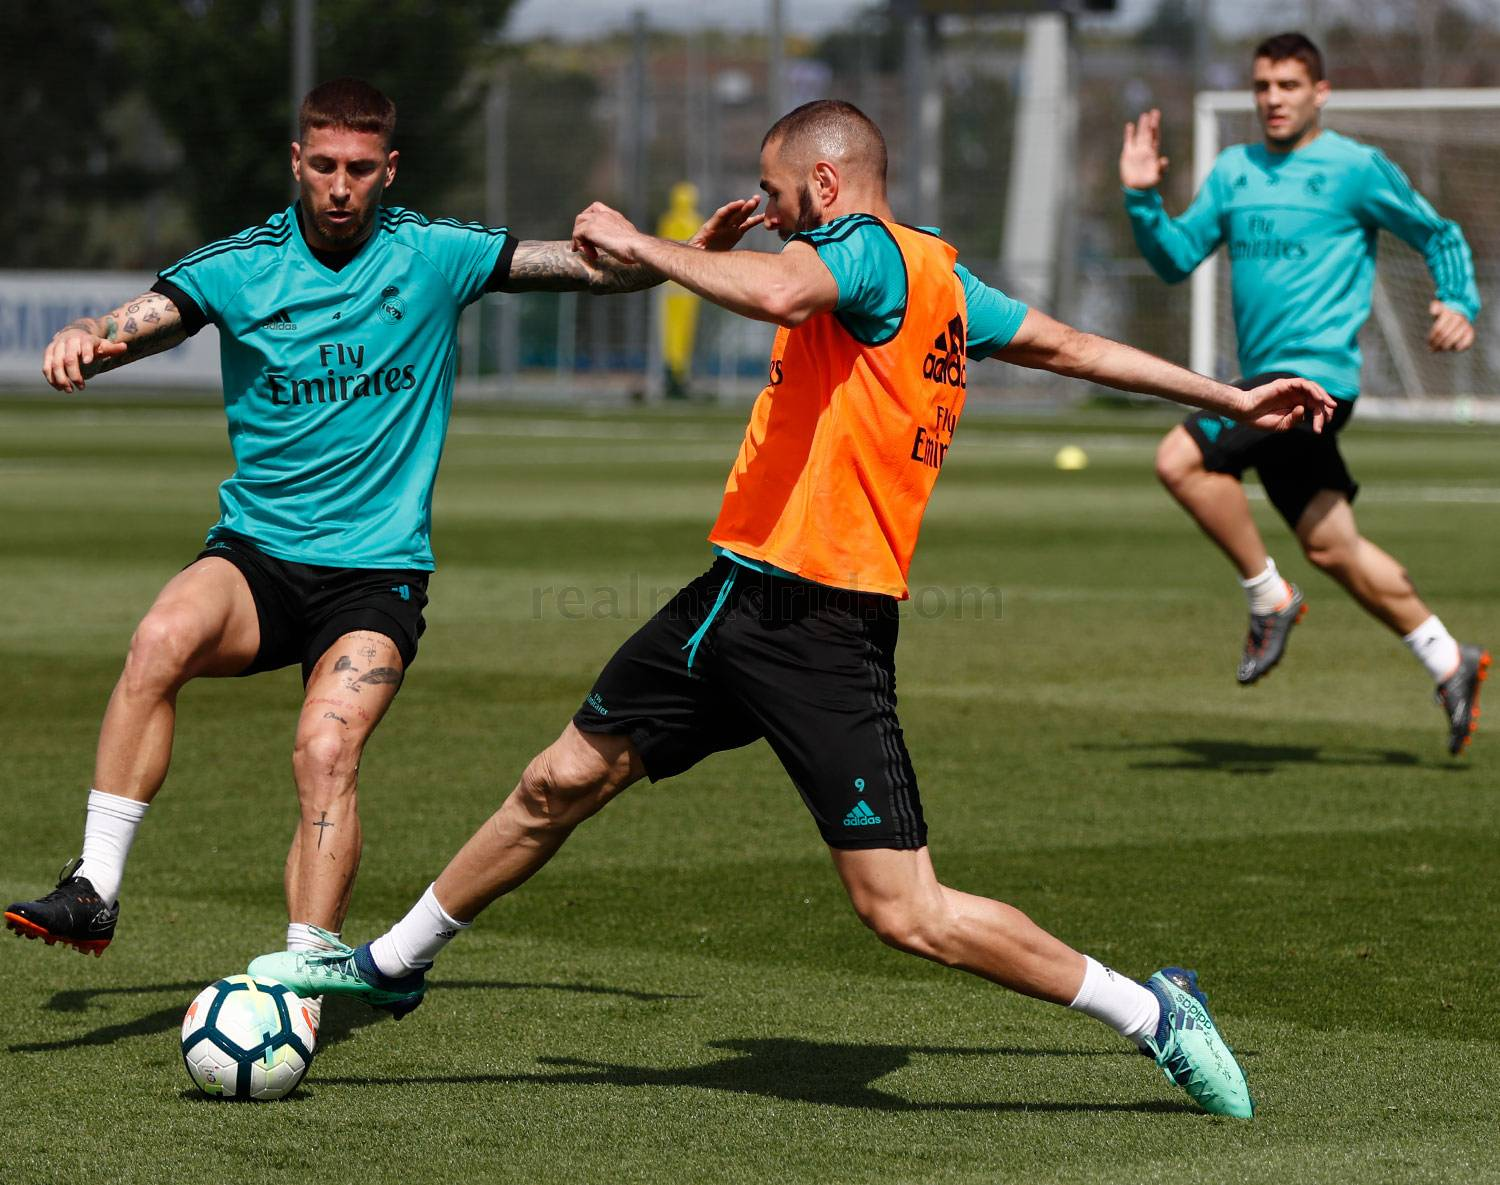 Real Madrid - Entrenamiento del Real Madrid - 27-04-2018